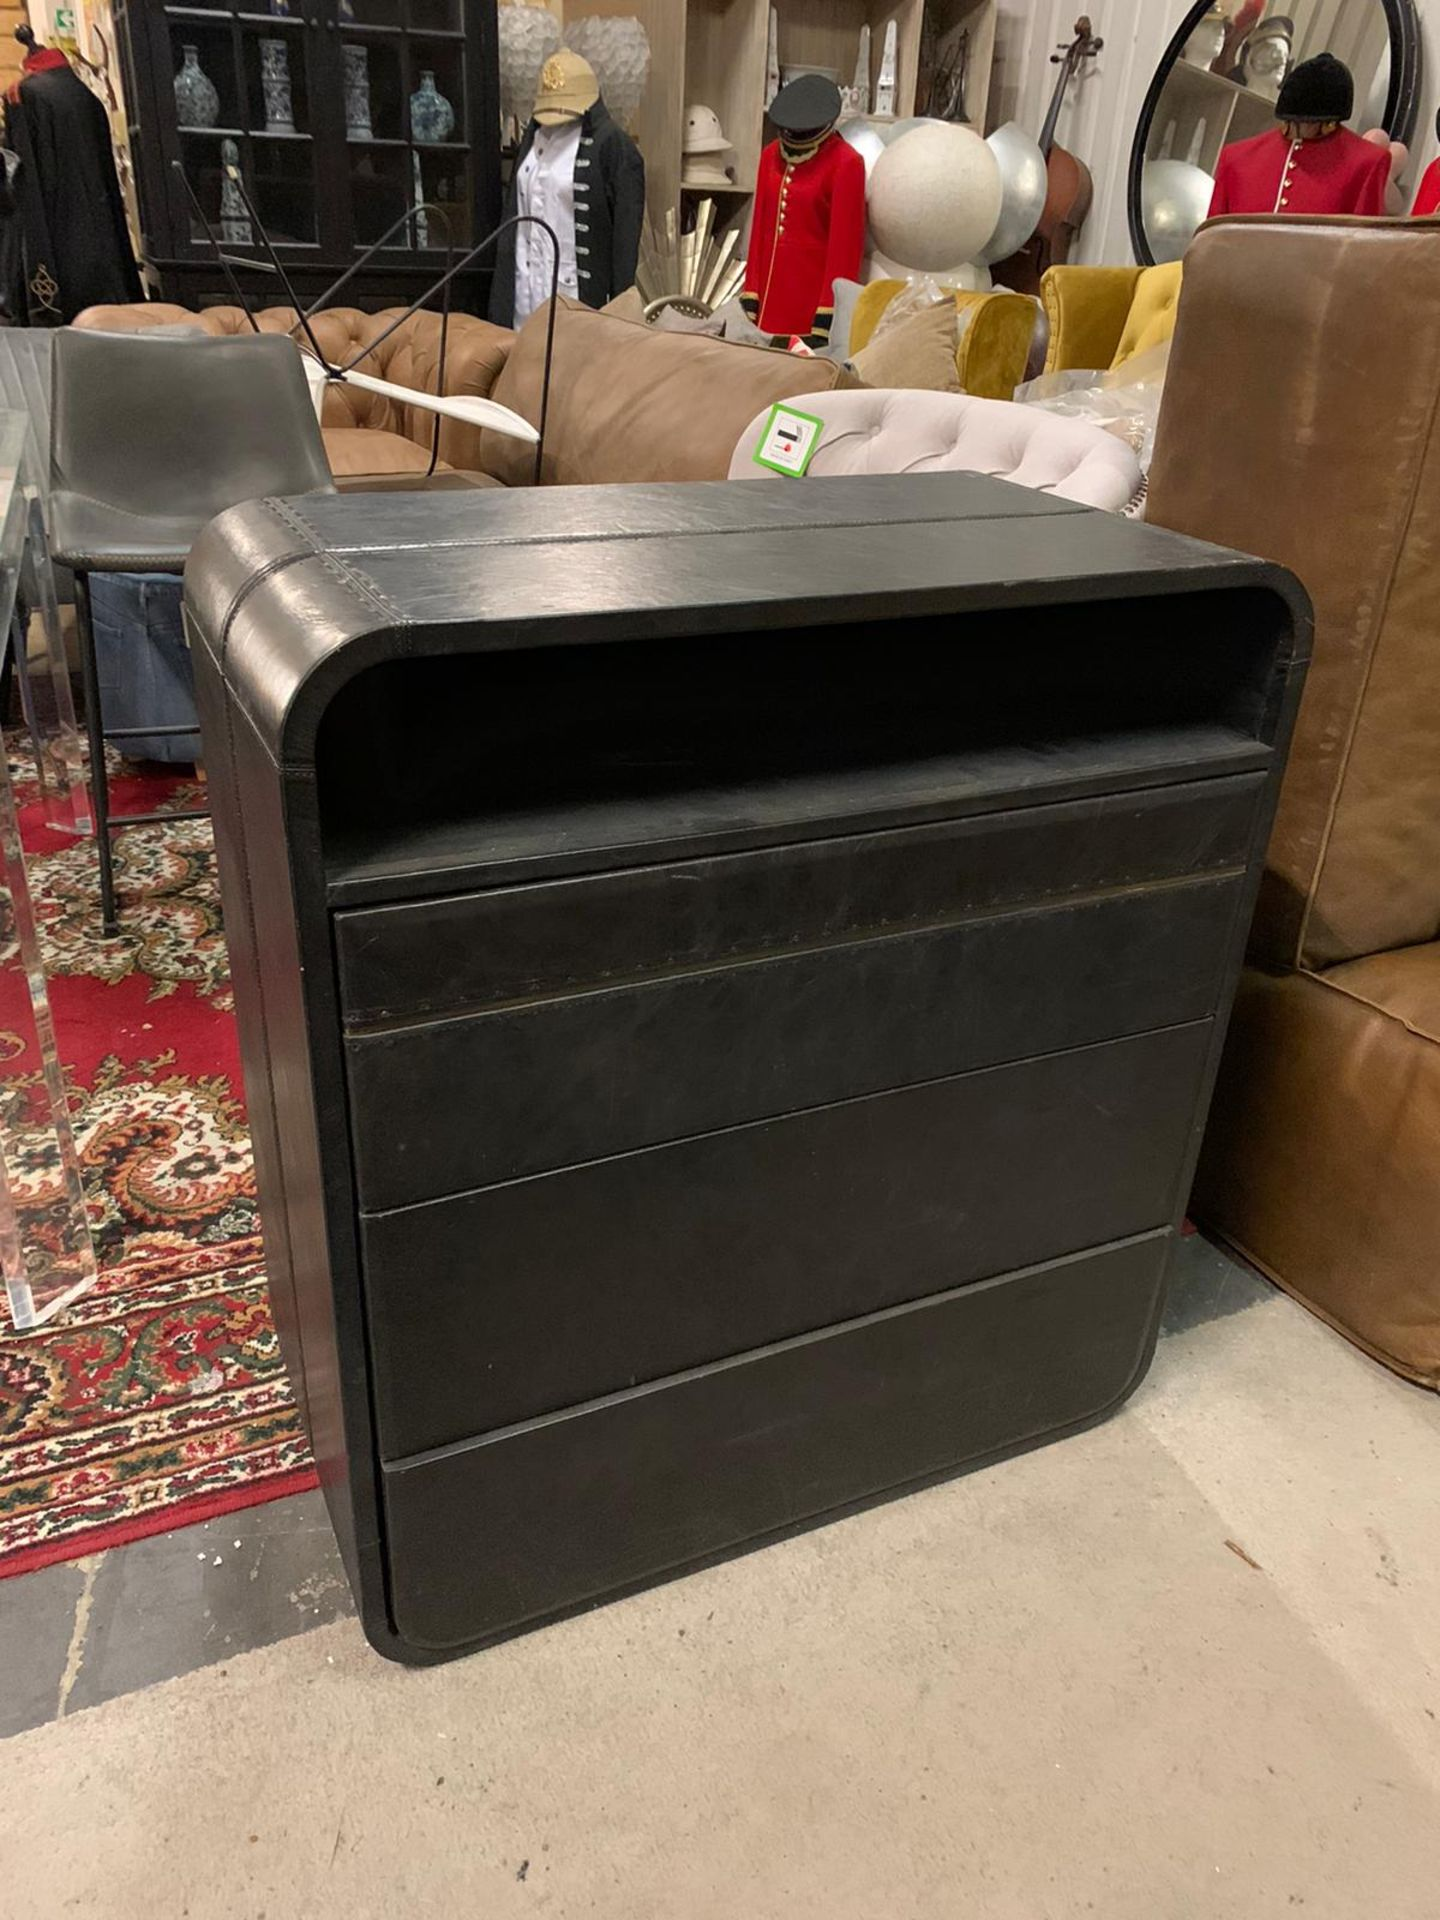 Lot 549 - Highlite Cabinet Leather 3 Drawer Inspired By The Light Streams Of Car Headlights On A Highway The